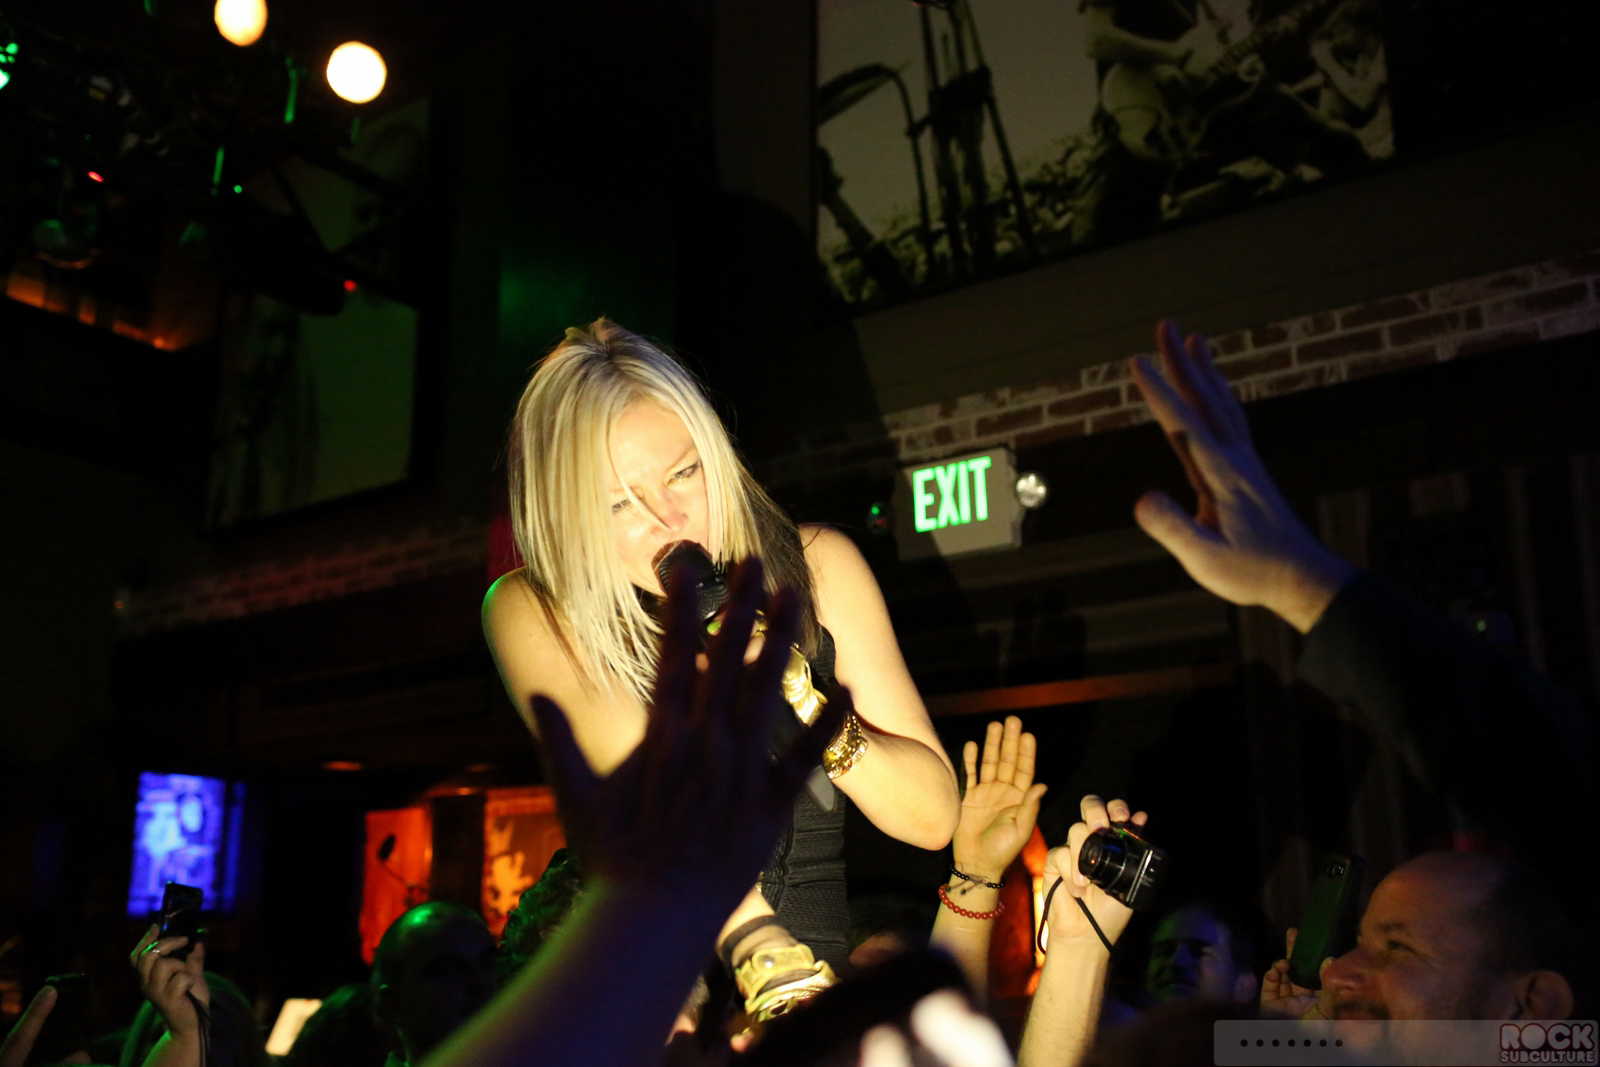 berlin featuring terri nunn at saint rocke hermosa beach california 2 1 2013 concert review. Black Bedroom Furniture Sets. Home Design Ideas